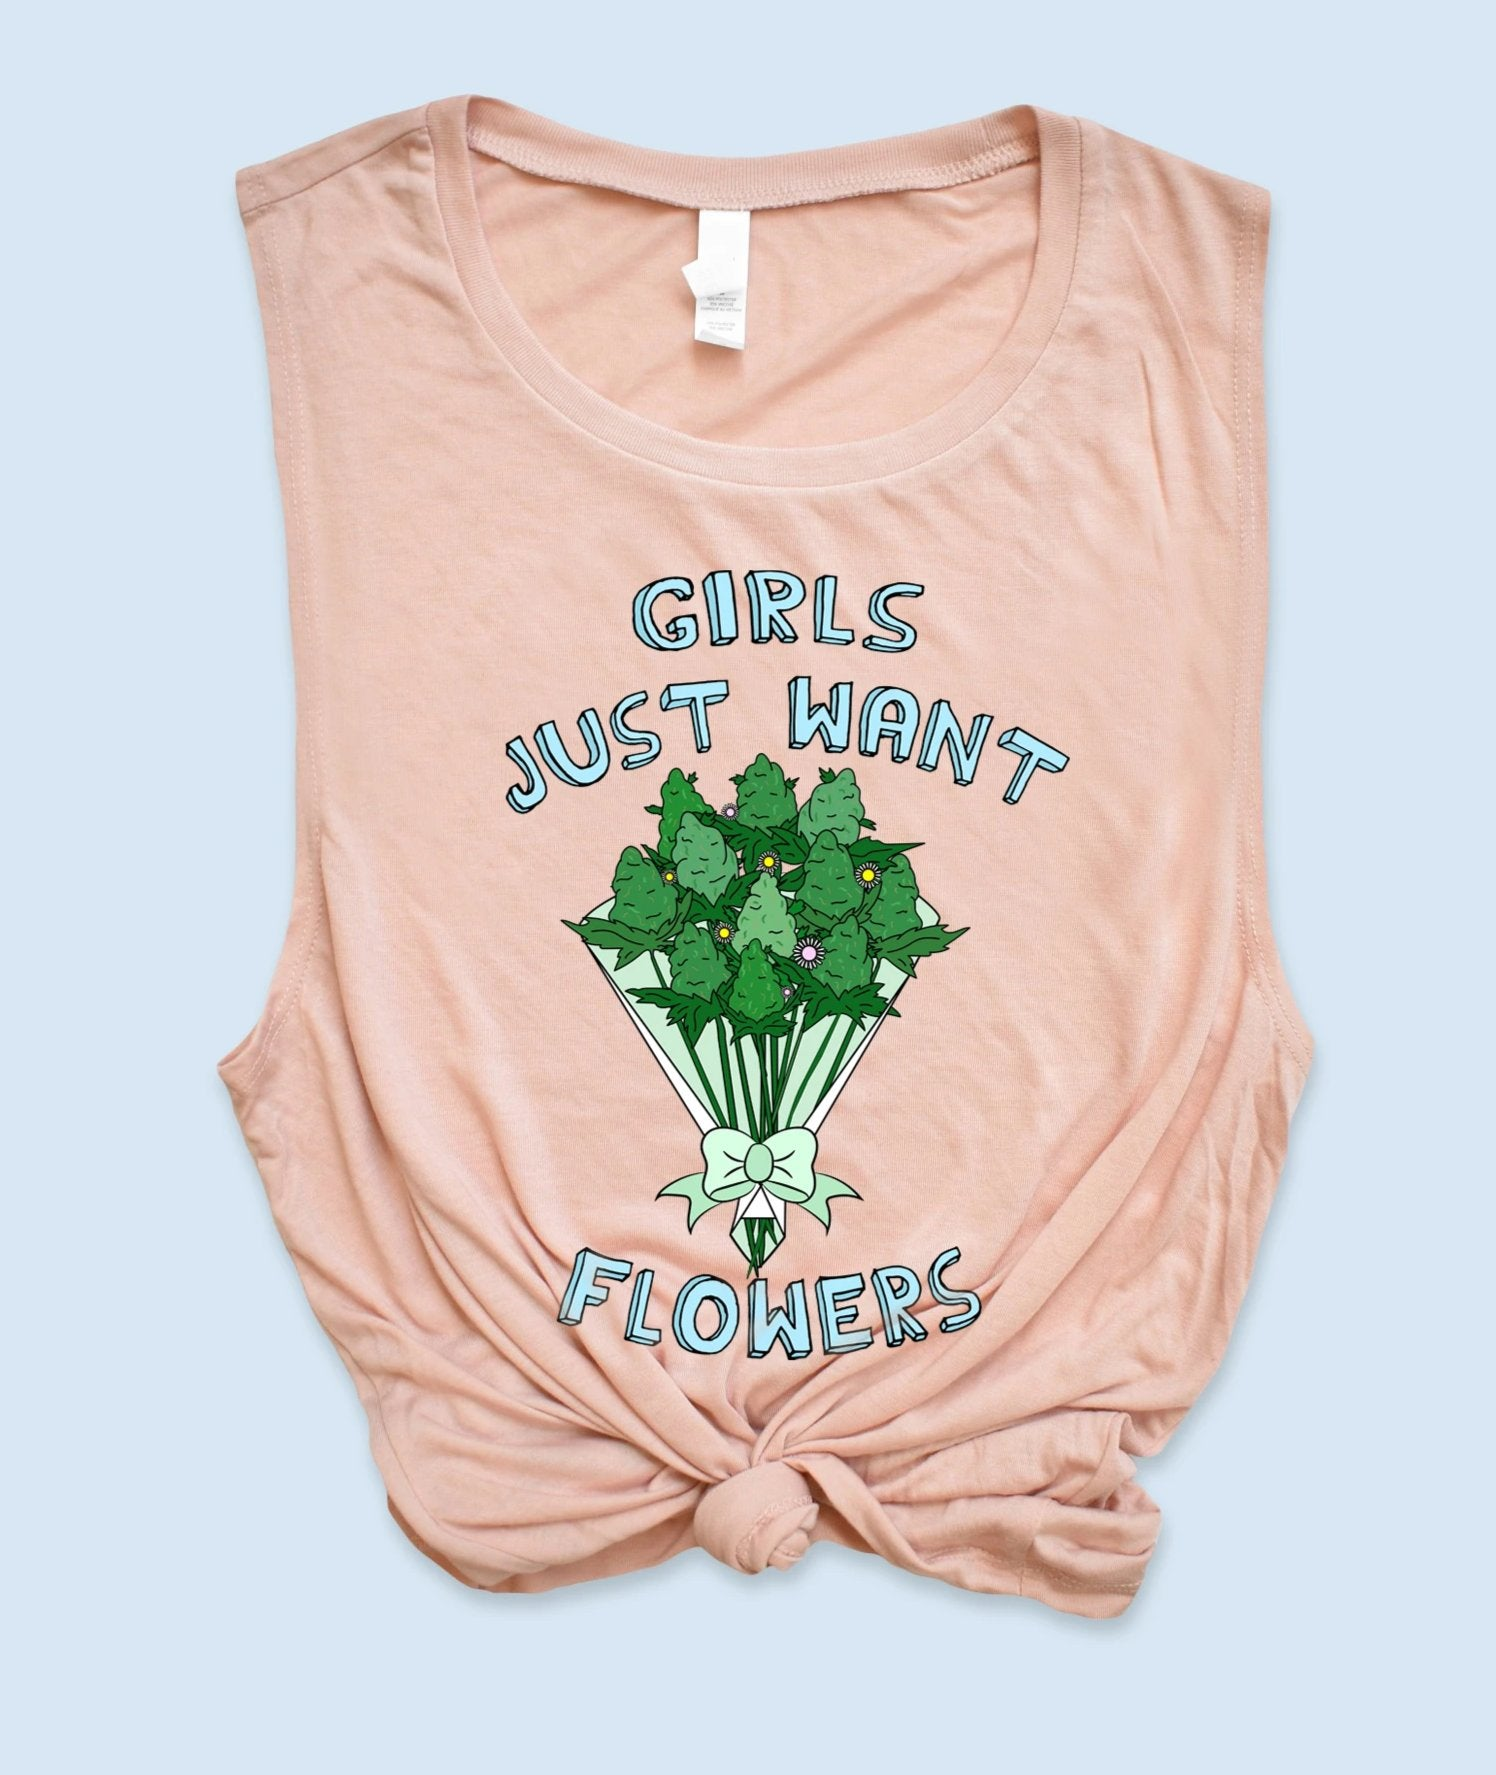 Peach muscle tank with weed flowers bouquet that says girls just want flowers - HighCiti